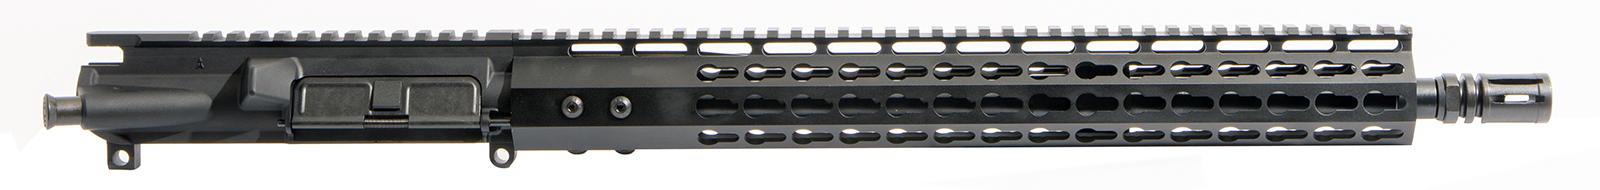 ar-15-upper-assembly-16-5-56x45-1-7-midlength-15-cbc-arms-keymod-gen-2-ar-15-handguard-rail